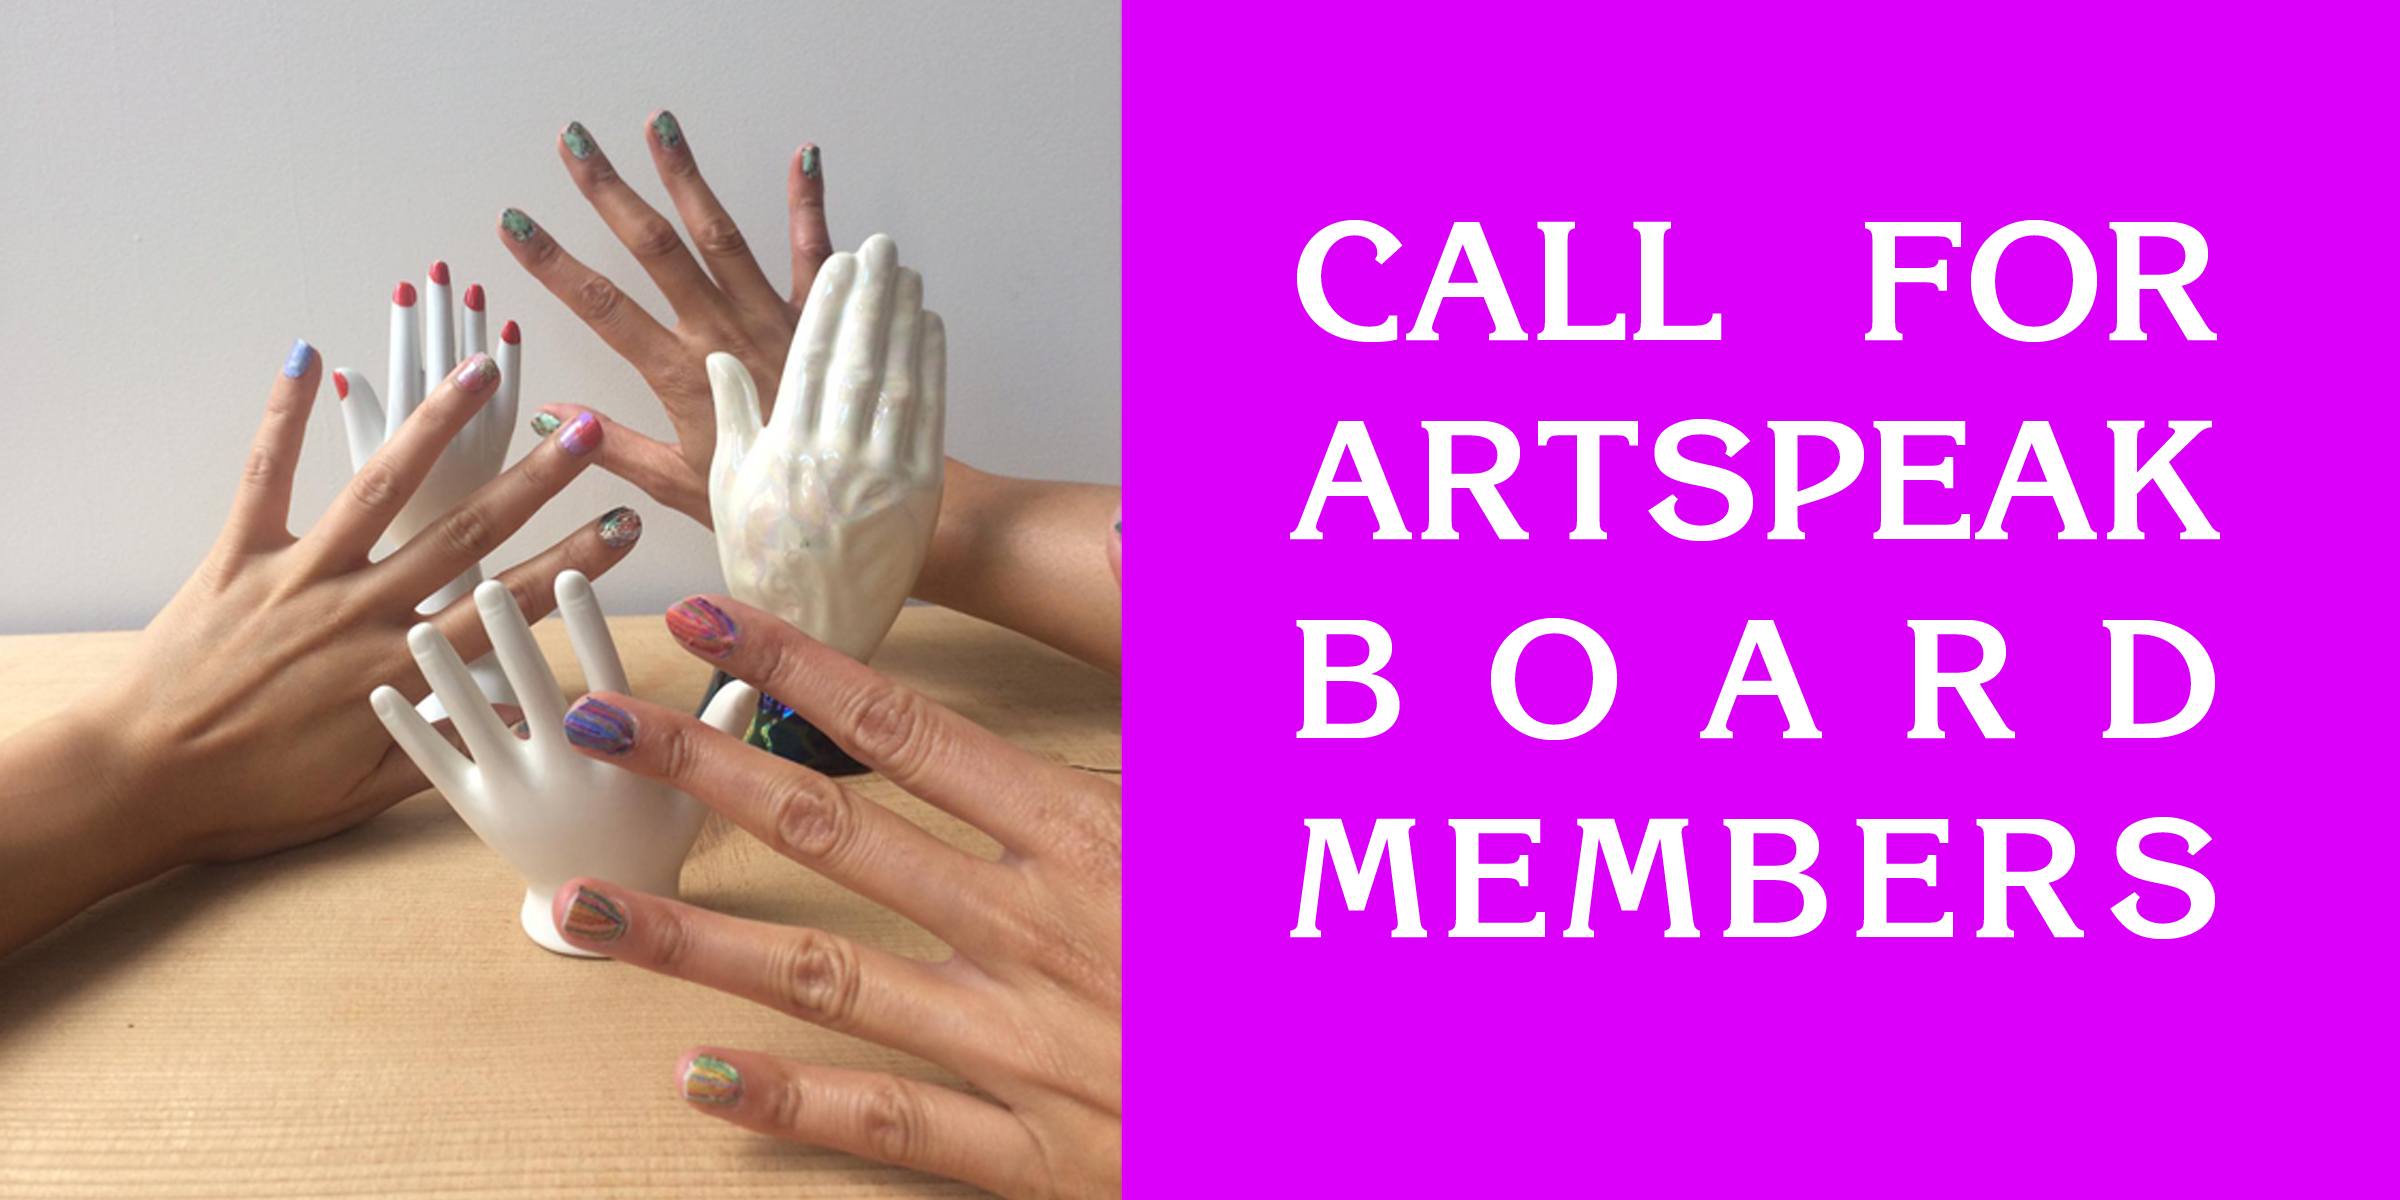 On the left, three hands and three mannequin hands are visible with colourful nail polish. On the right, white text on hot pink background reads